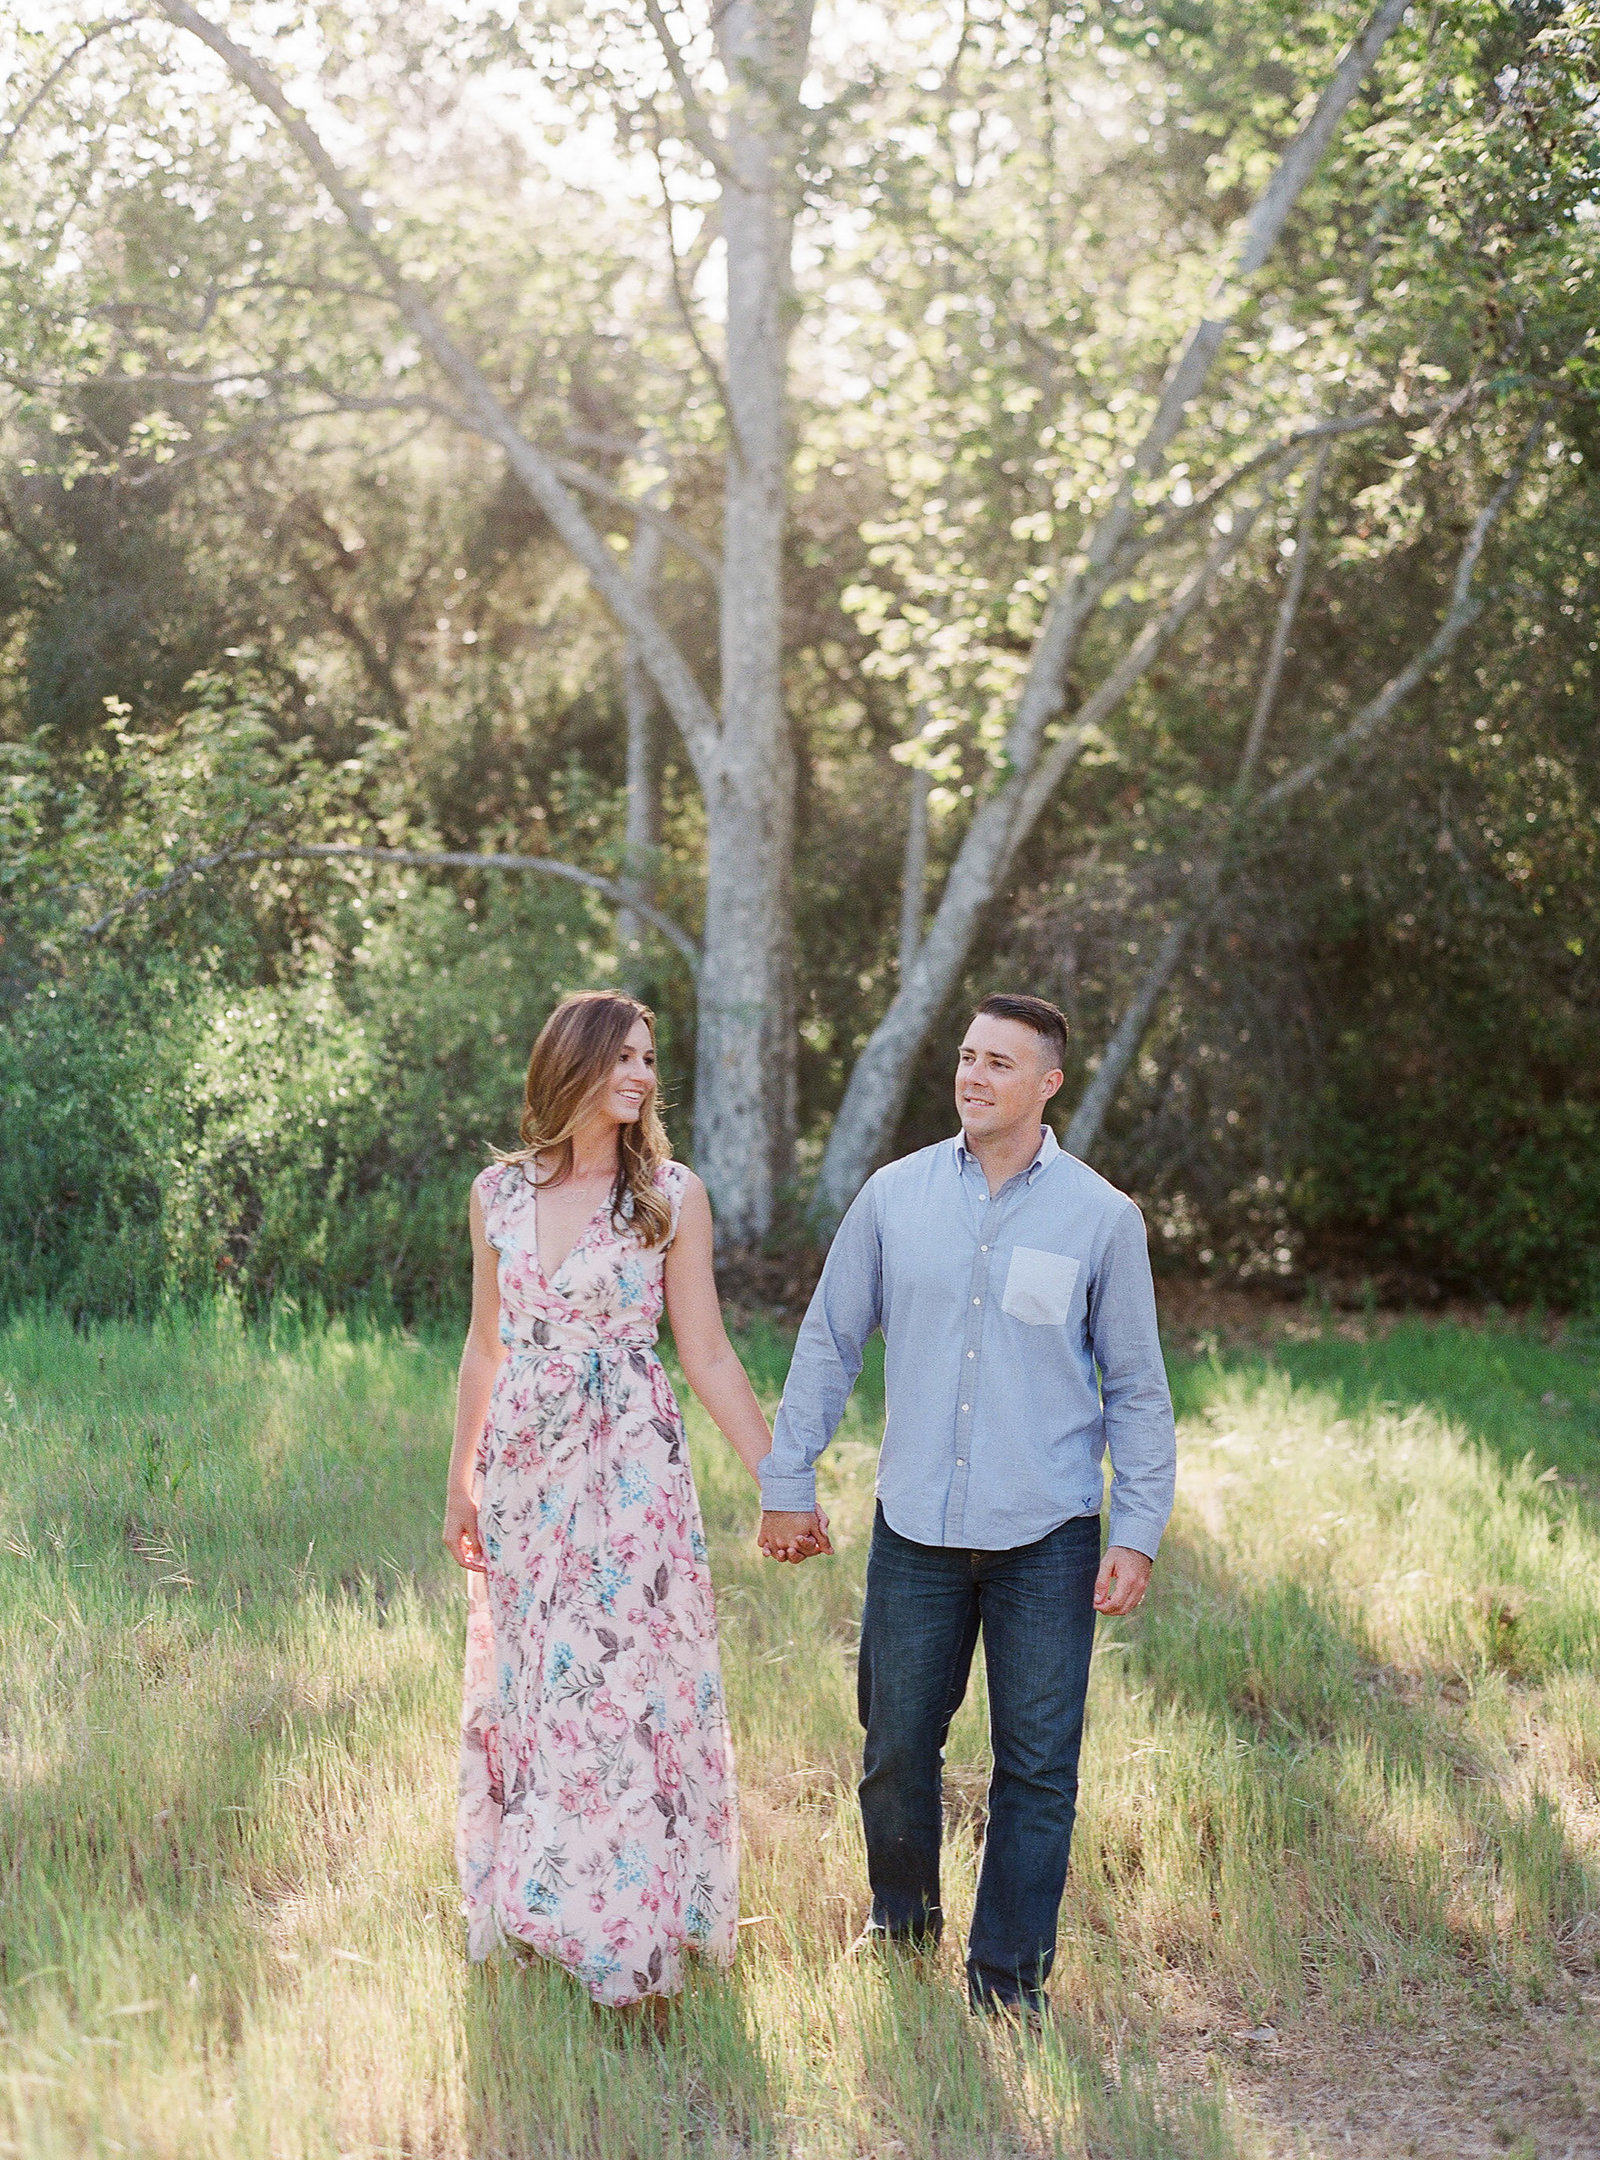 Pura-Soul-Photo-Rollin-Engagement-Film-20